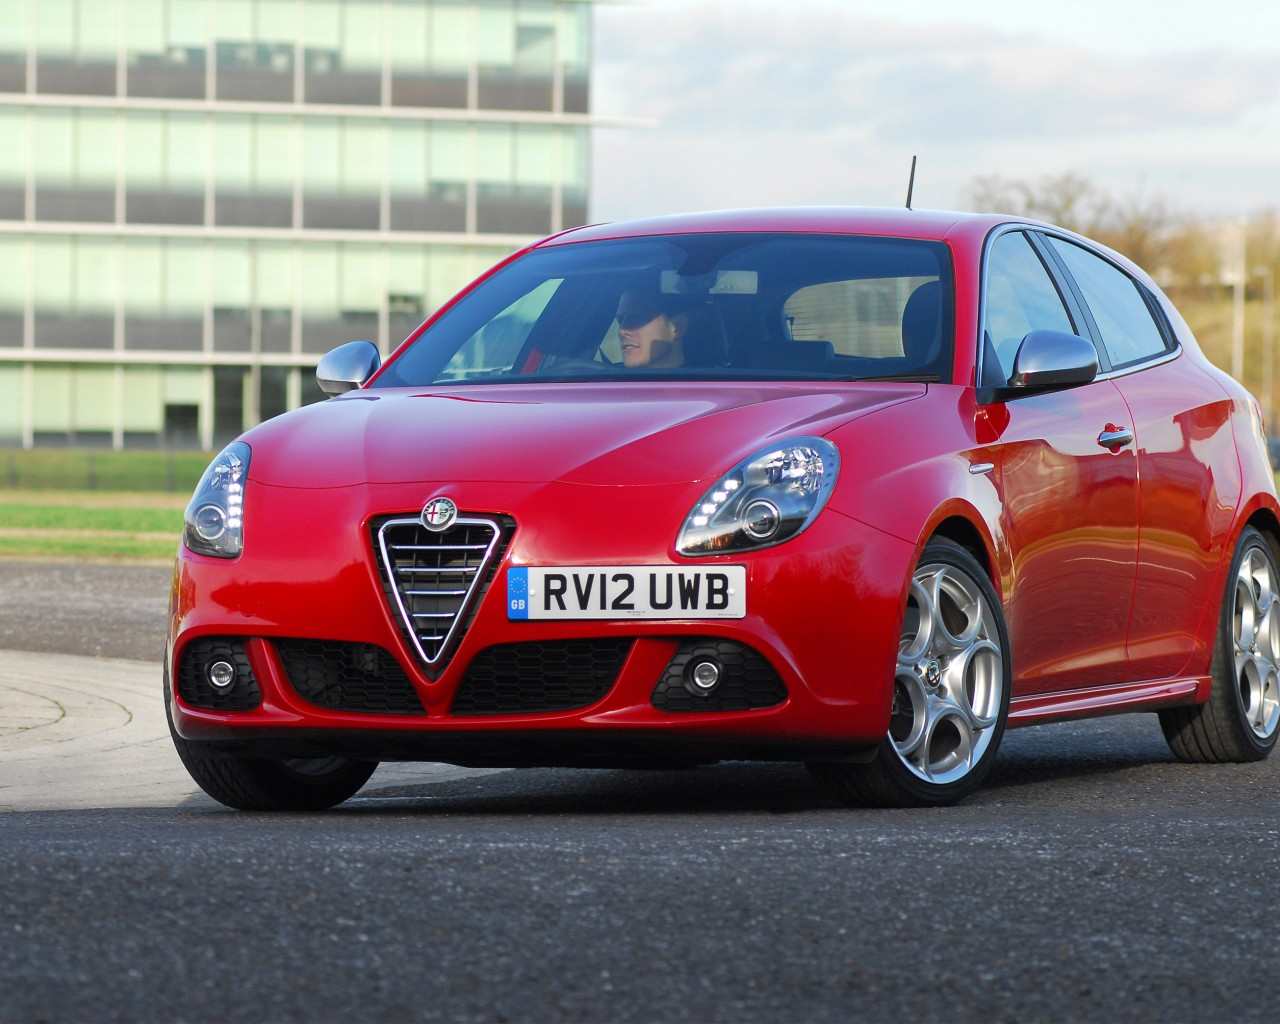 Alfa-Romeo Giulietta TCT photo 14